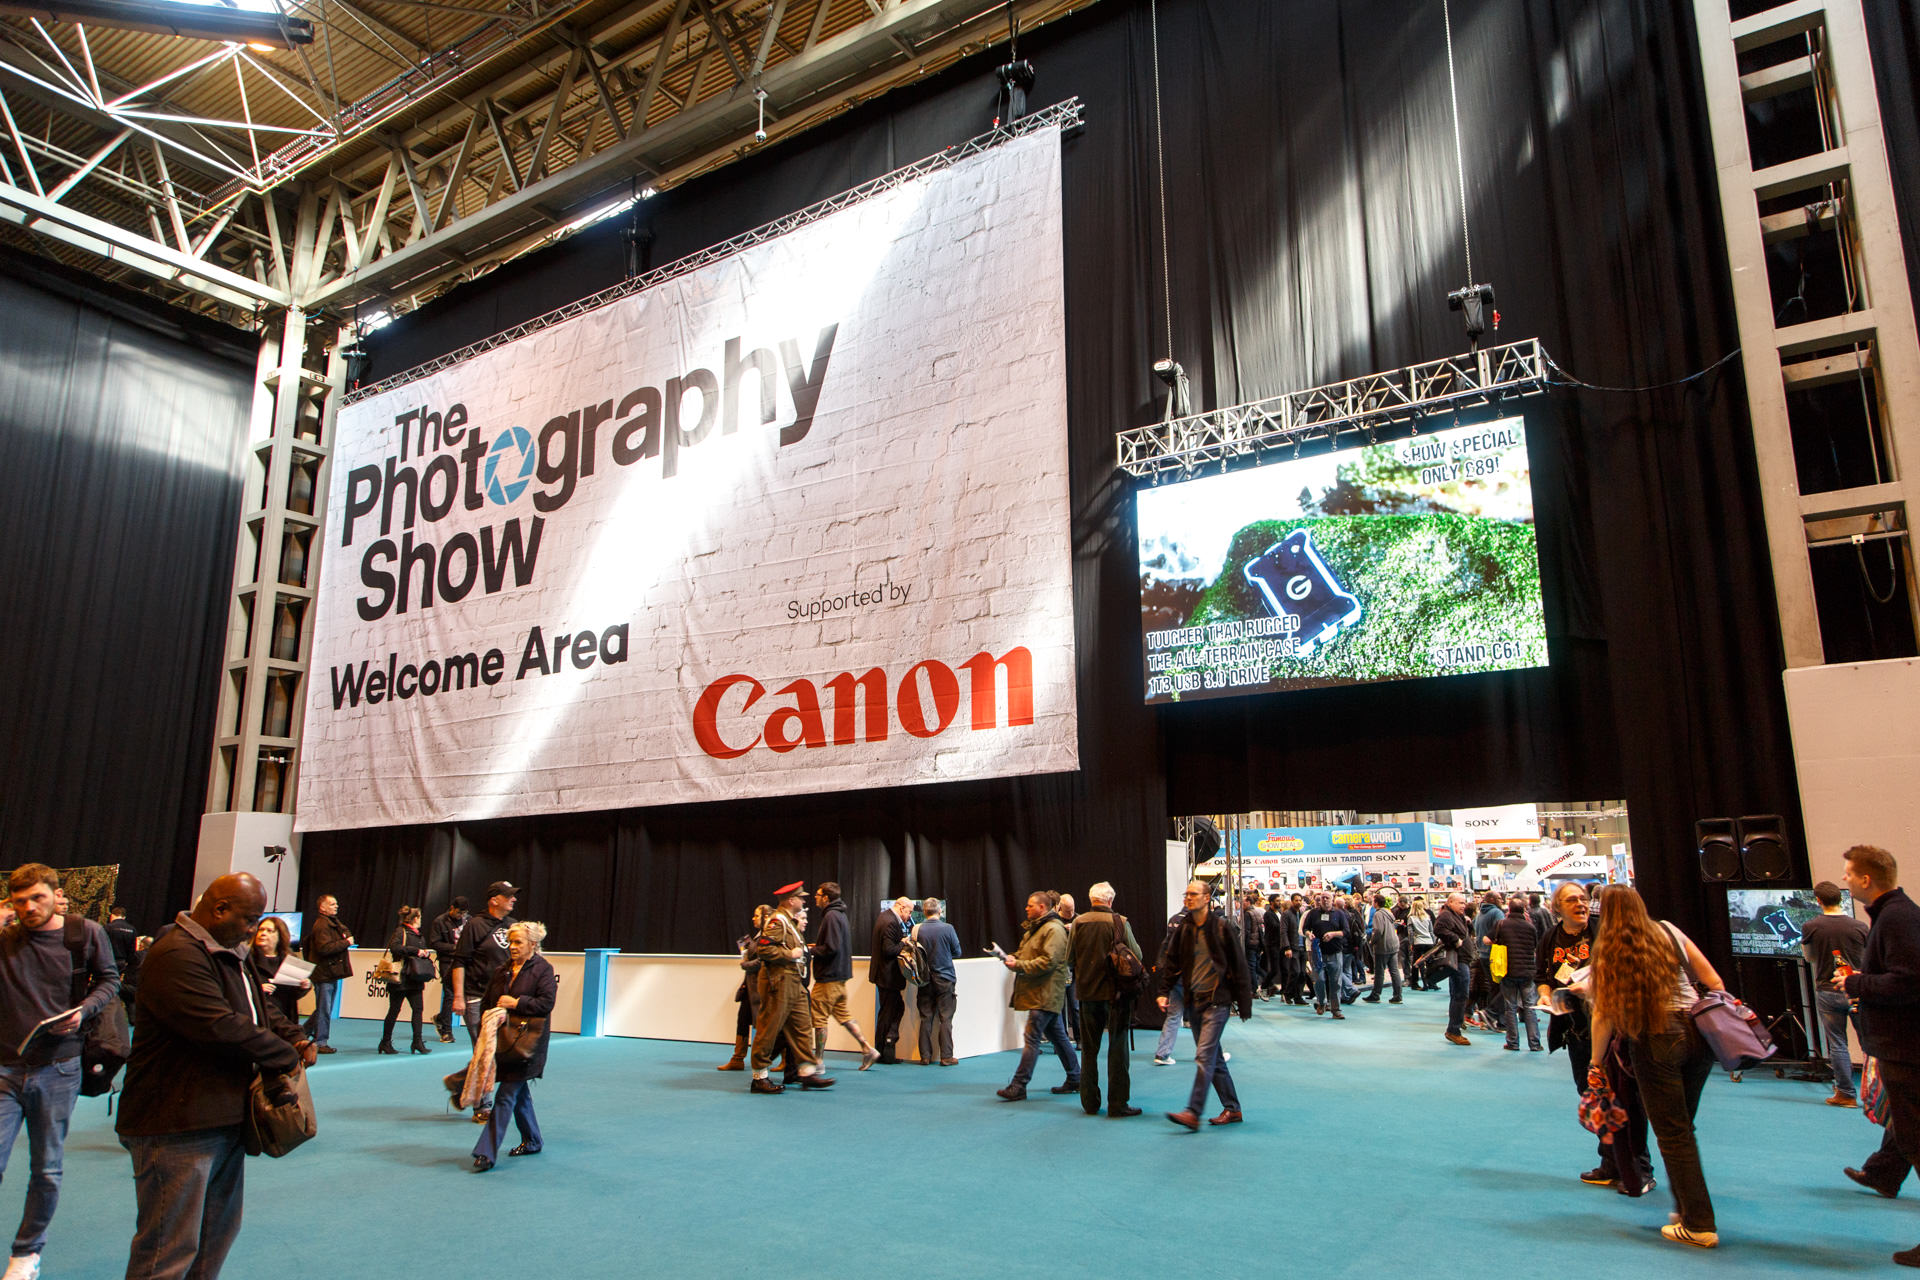 March - The Photography Show at the Birmingham NEC Arena.